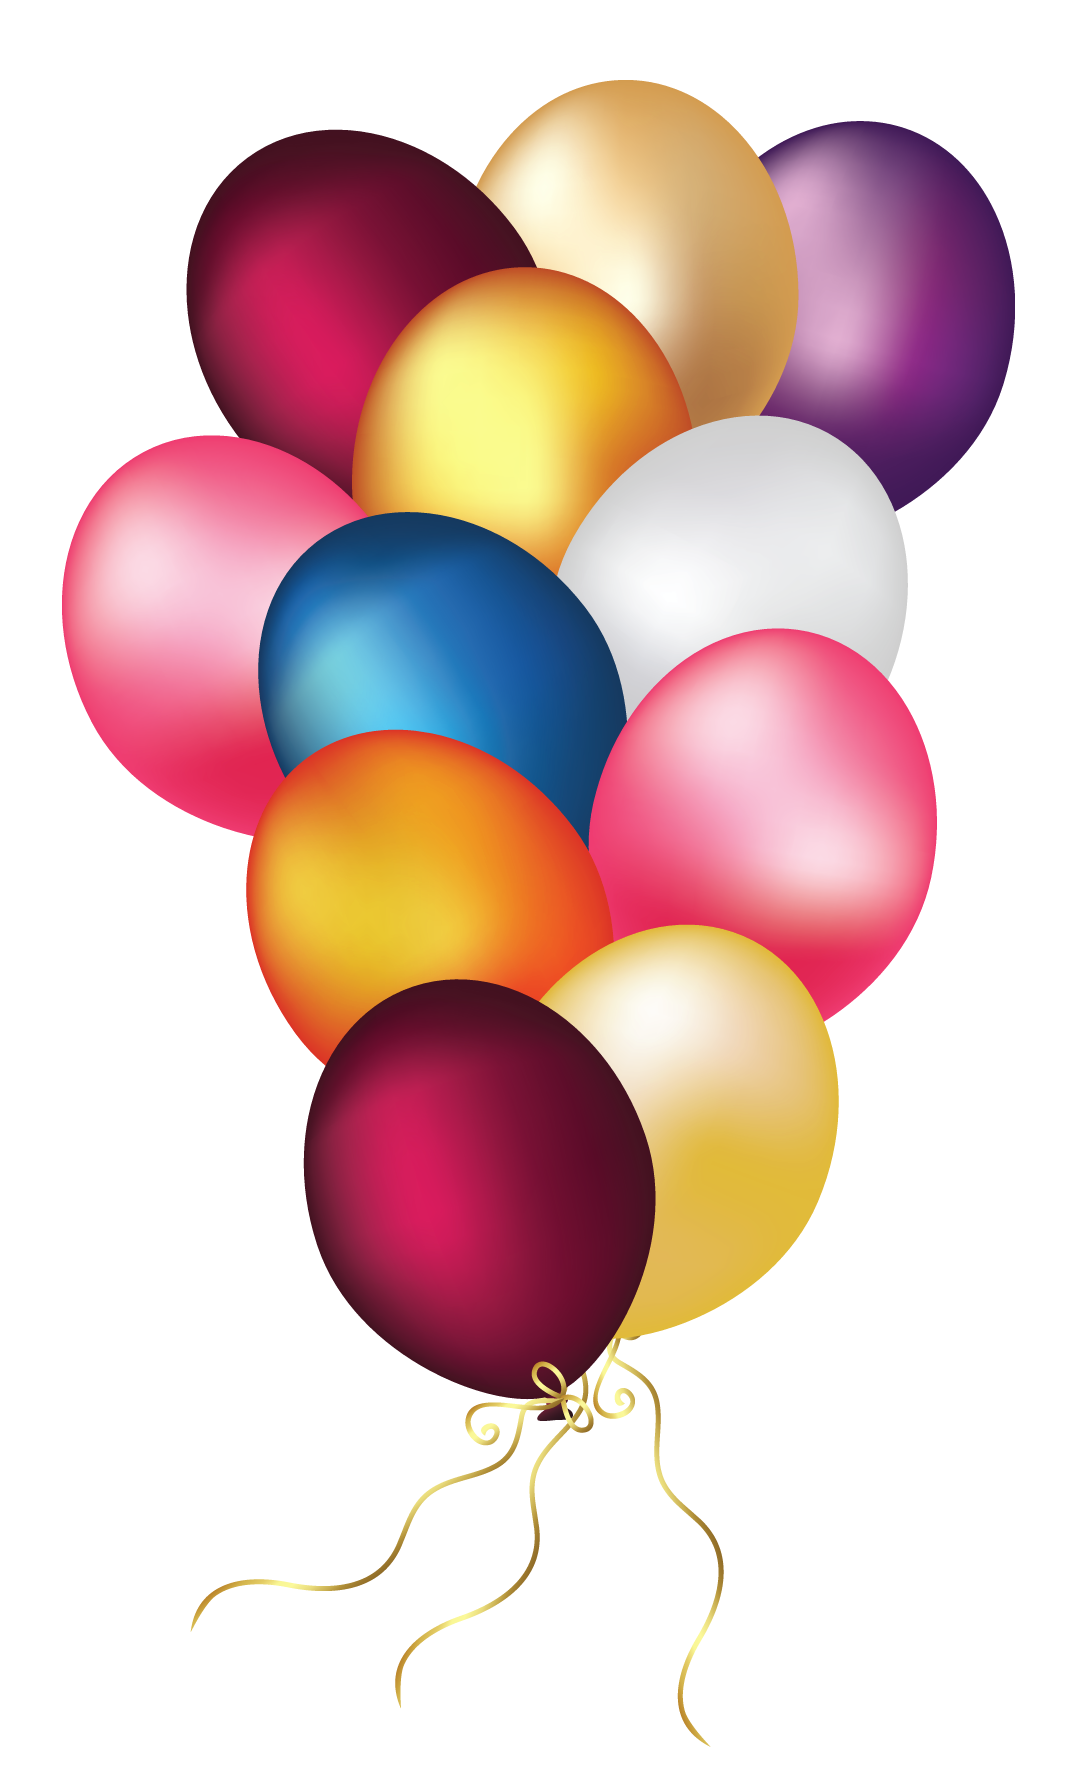 Colorful balloons transparent png. Clipart balloon gate